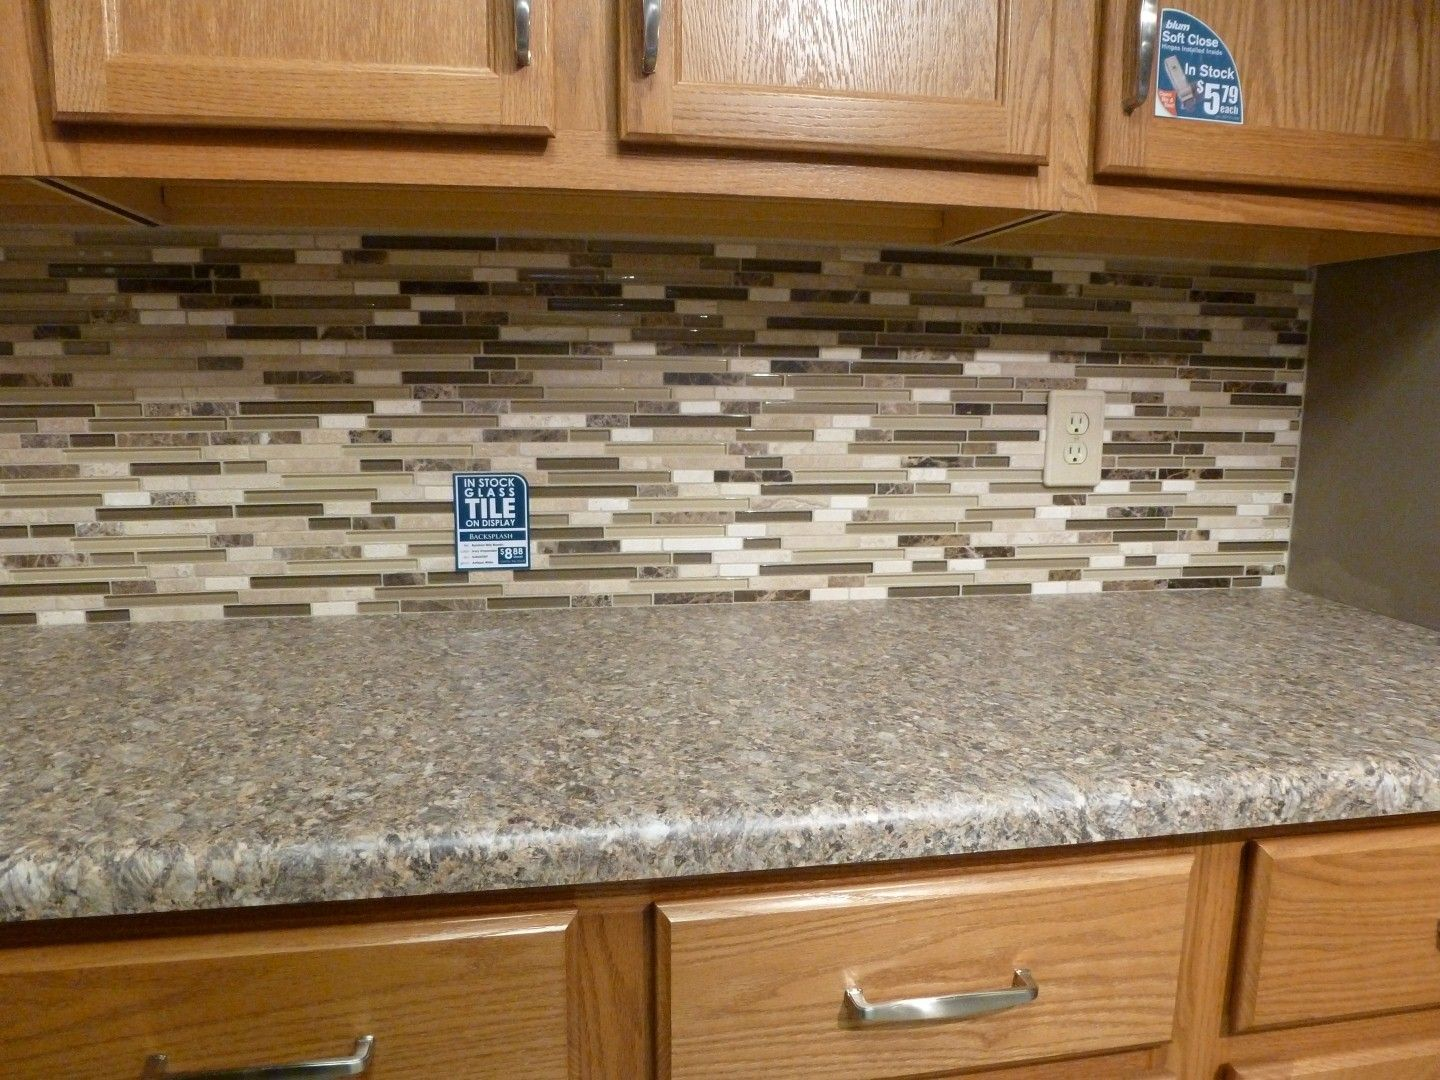 Mosaic kitchen tile backsplash ideas 2565 Mosaic kitchen wall tiles ideas